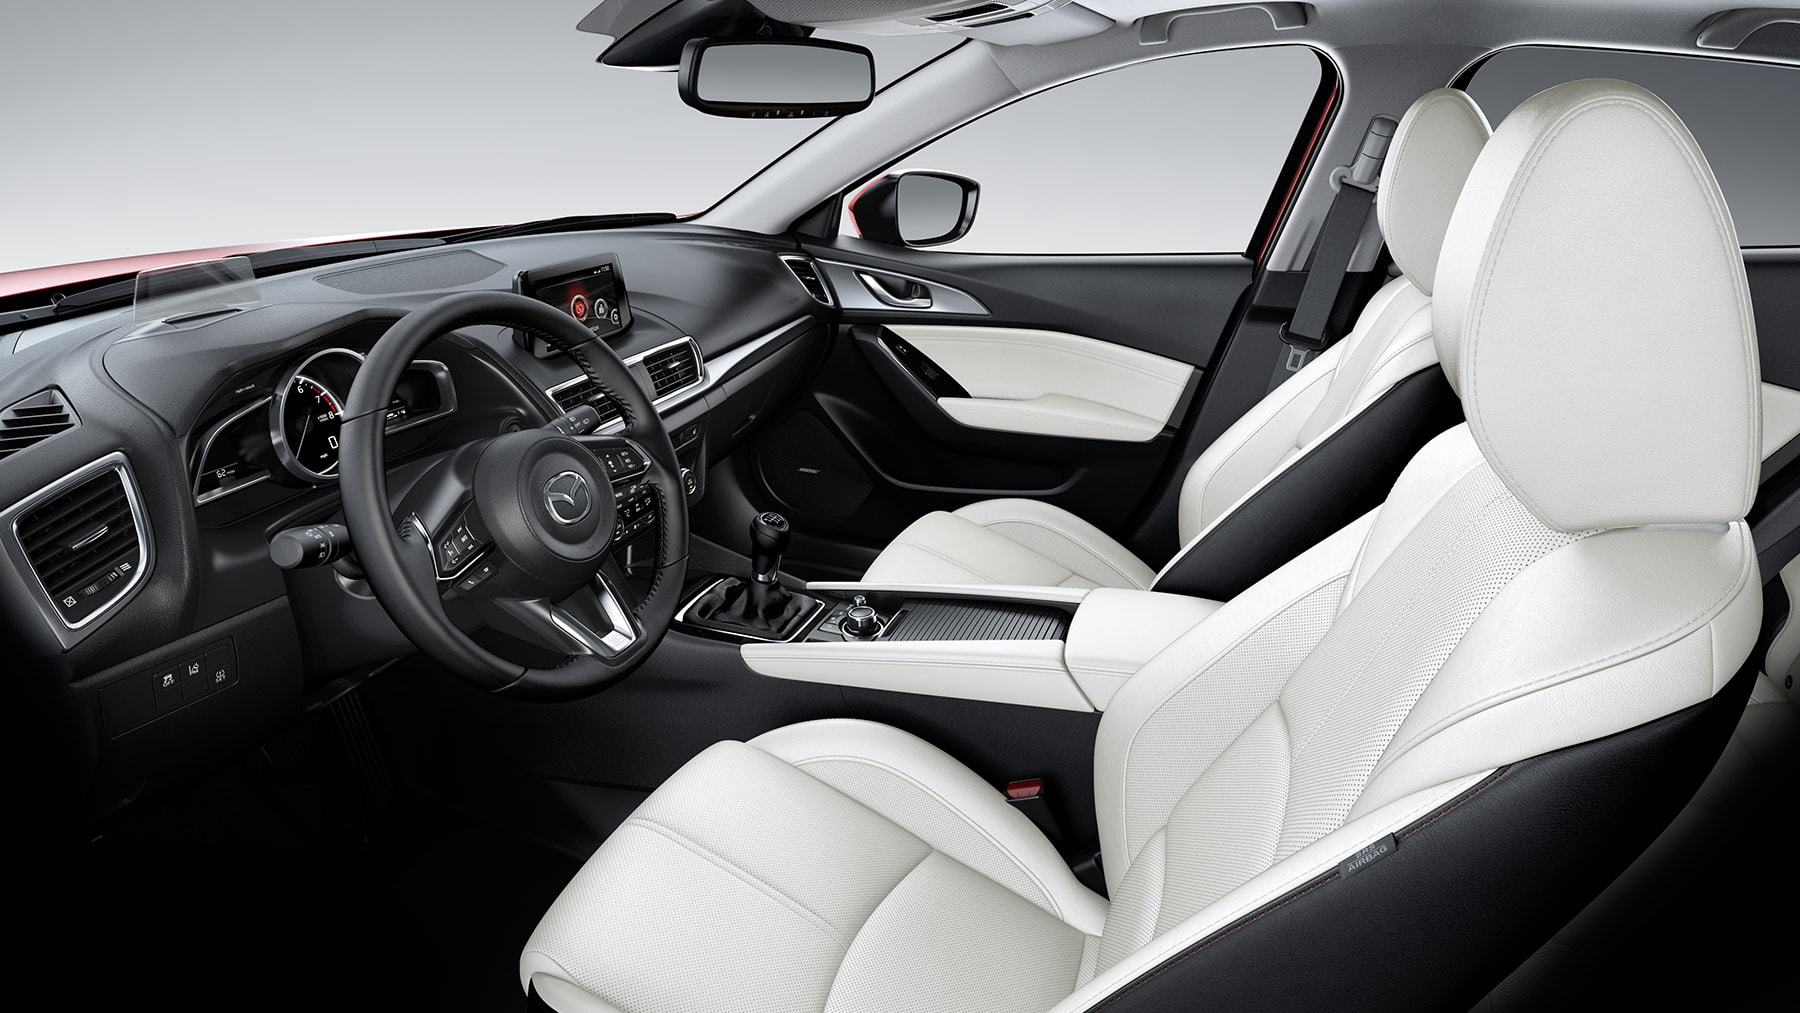 All Passengers Will Feel Pampered Aboard the Mazda3 Sedan